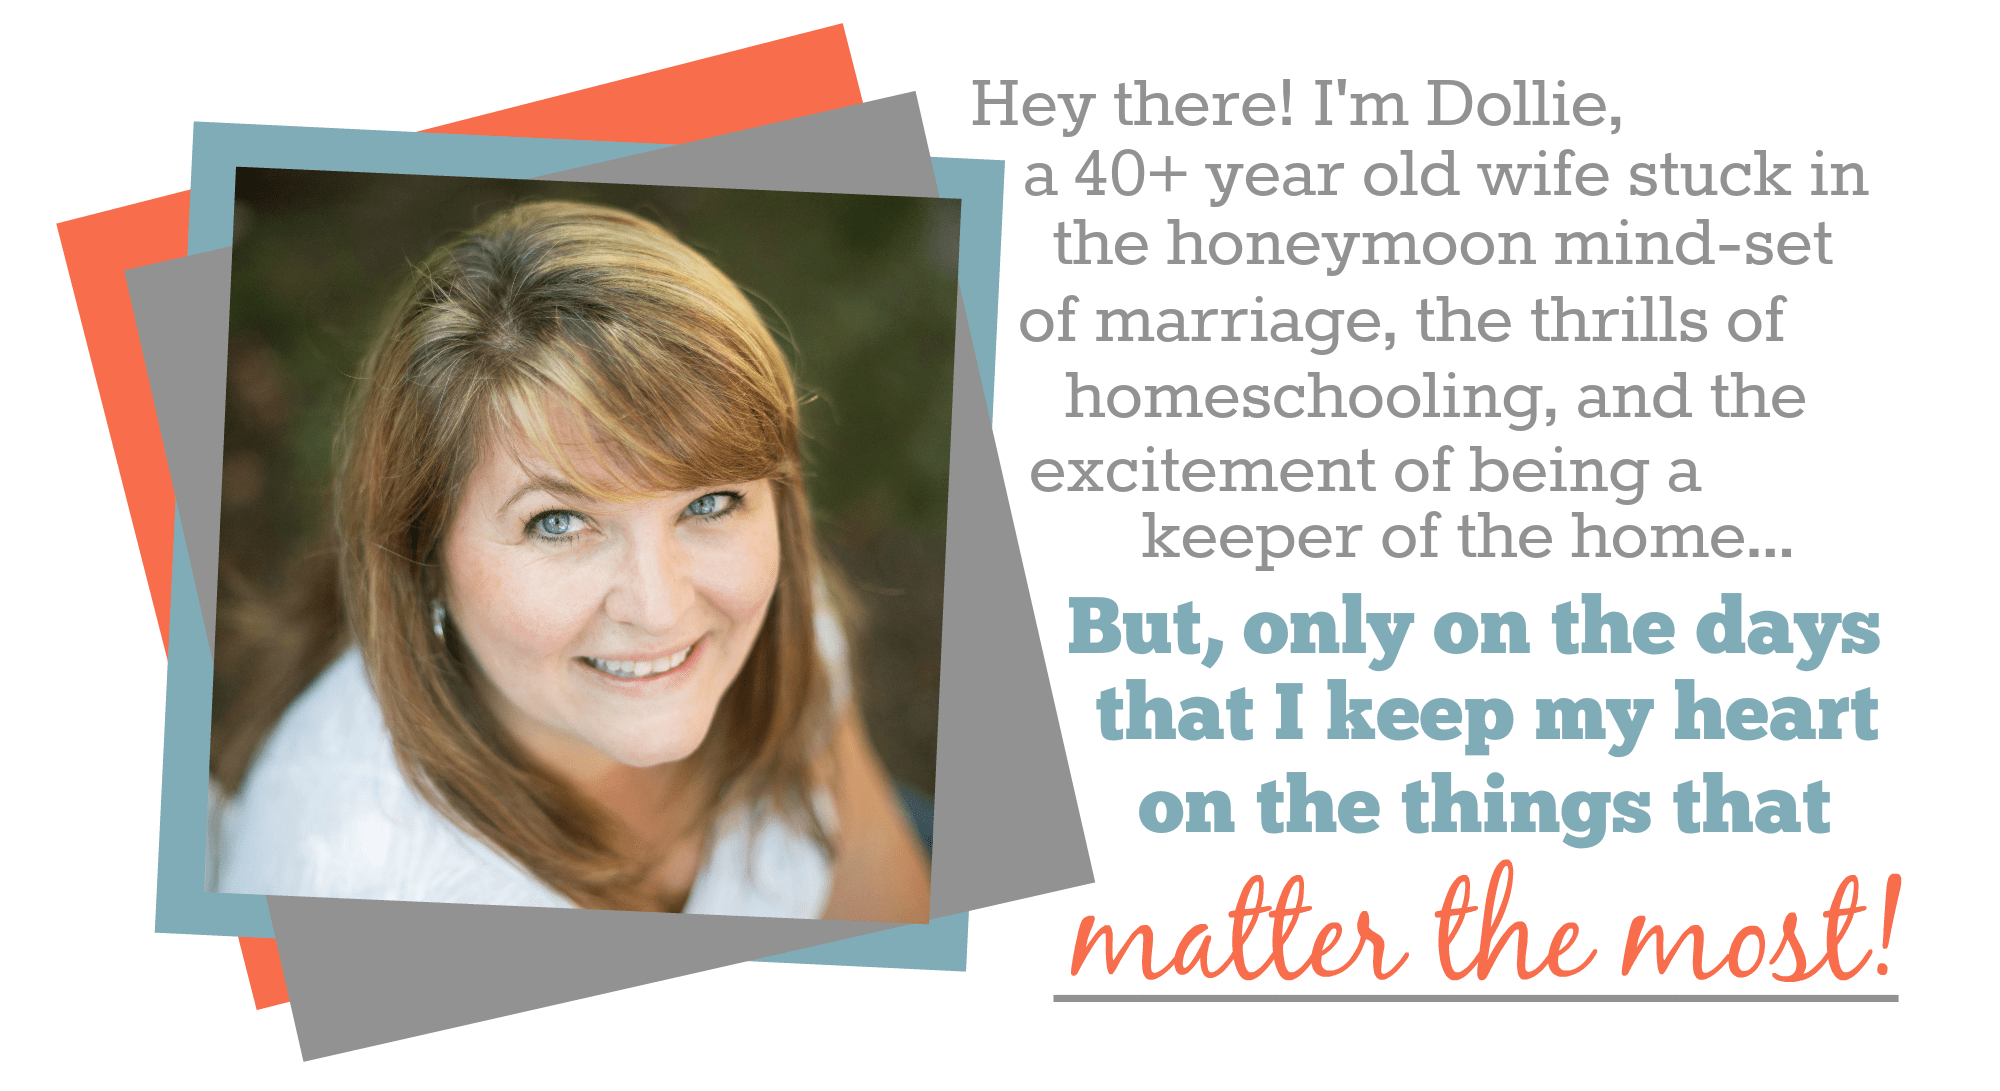 Dollie Freeman from Joy in the Home - Finding the Good Things in the Everyday of Home, Family & Homeschooling | www.joyinthehome.com